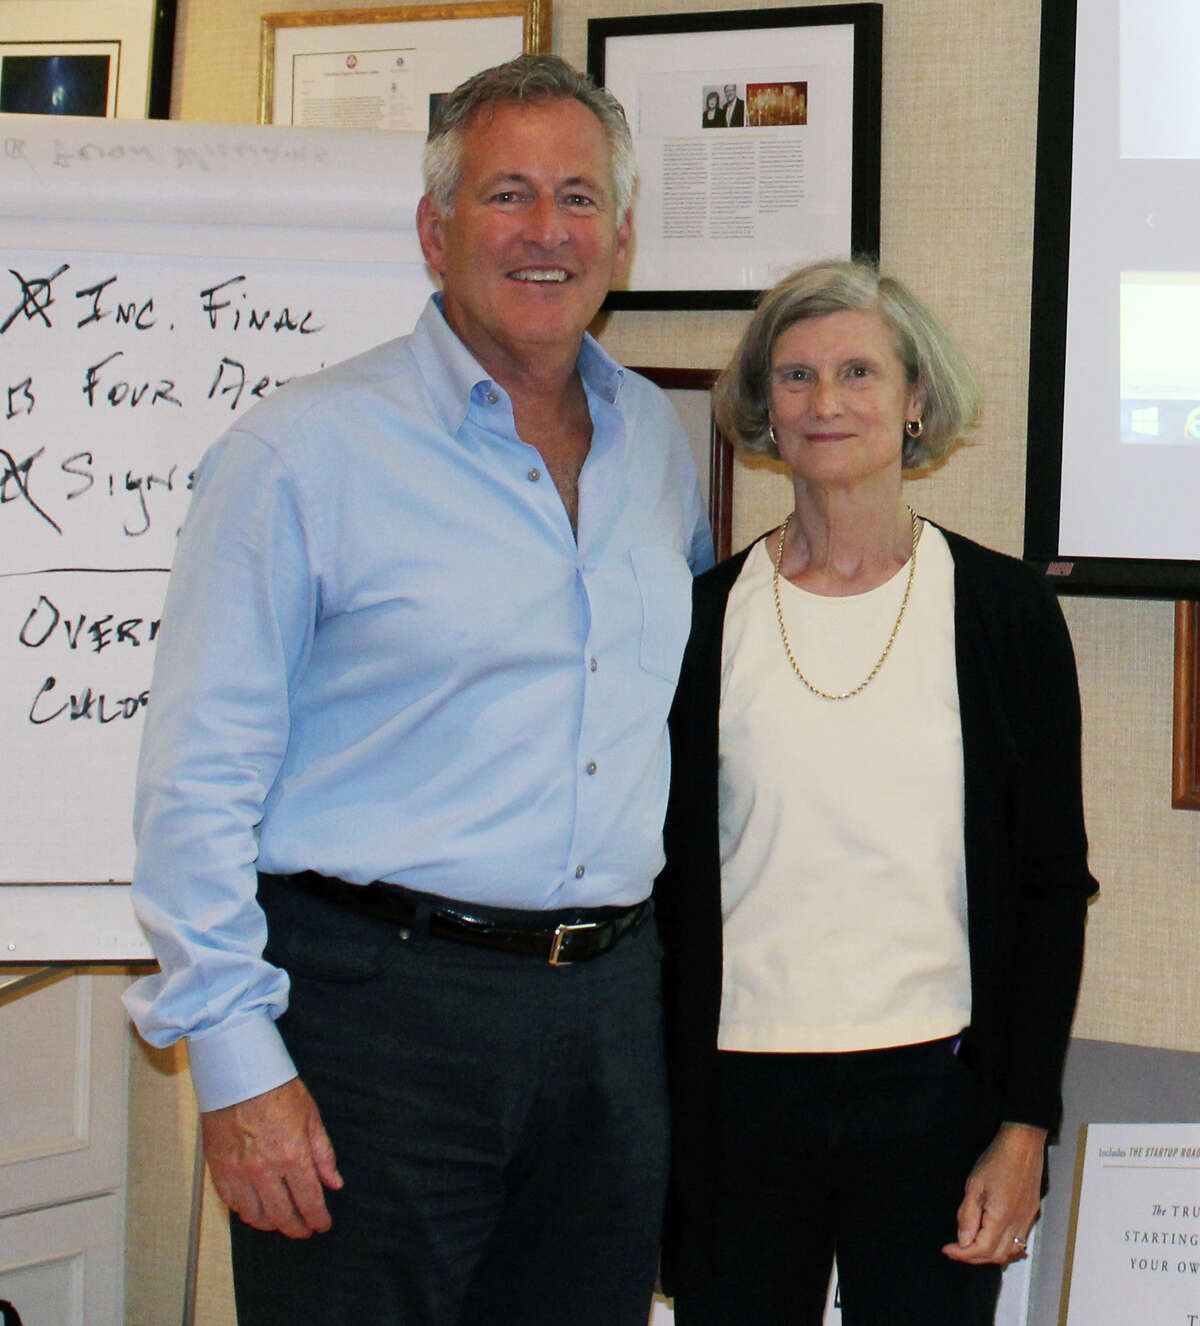 Ed McLaughlin and Wyn Lydecker in the office in Darien where they wrote their book